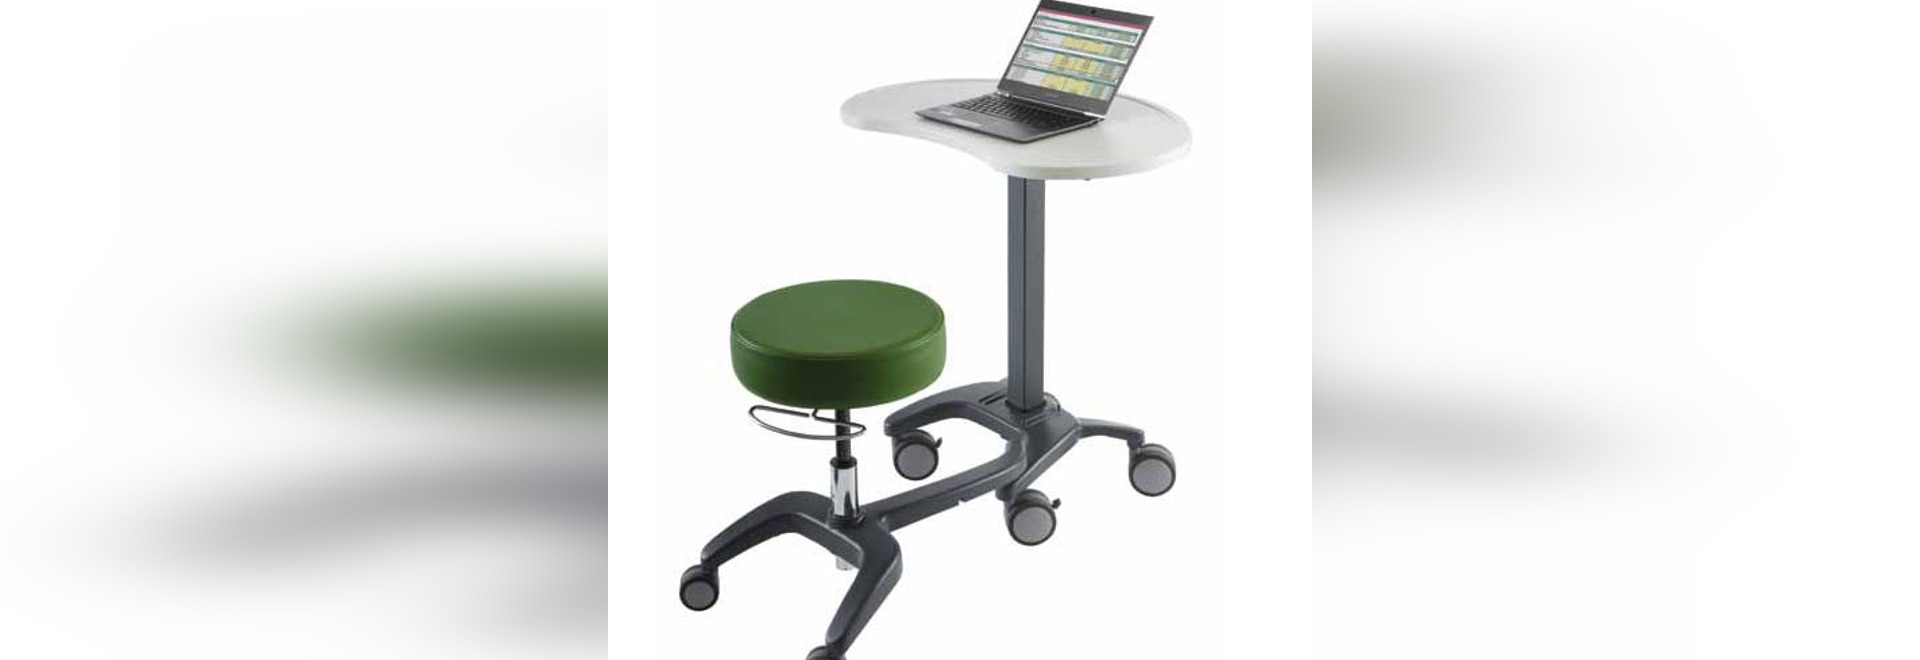 NEW: mobile computer workstation by Carstens